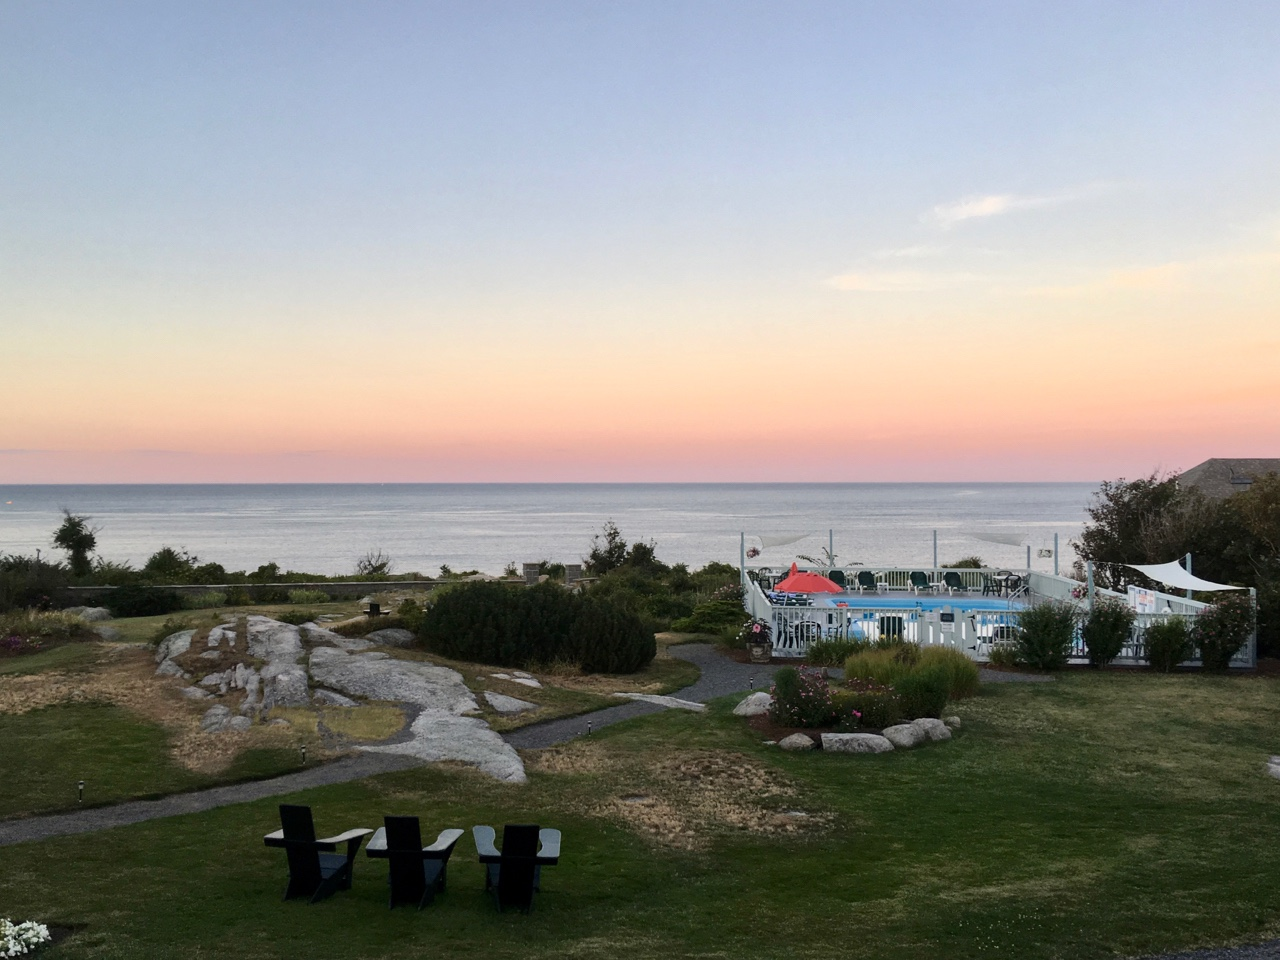 Amenities at the Emerson Inn by the Sea include an outdoor heated pool, a restaurant, and gorgeous views.